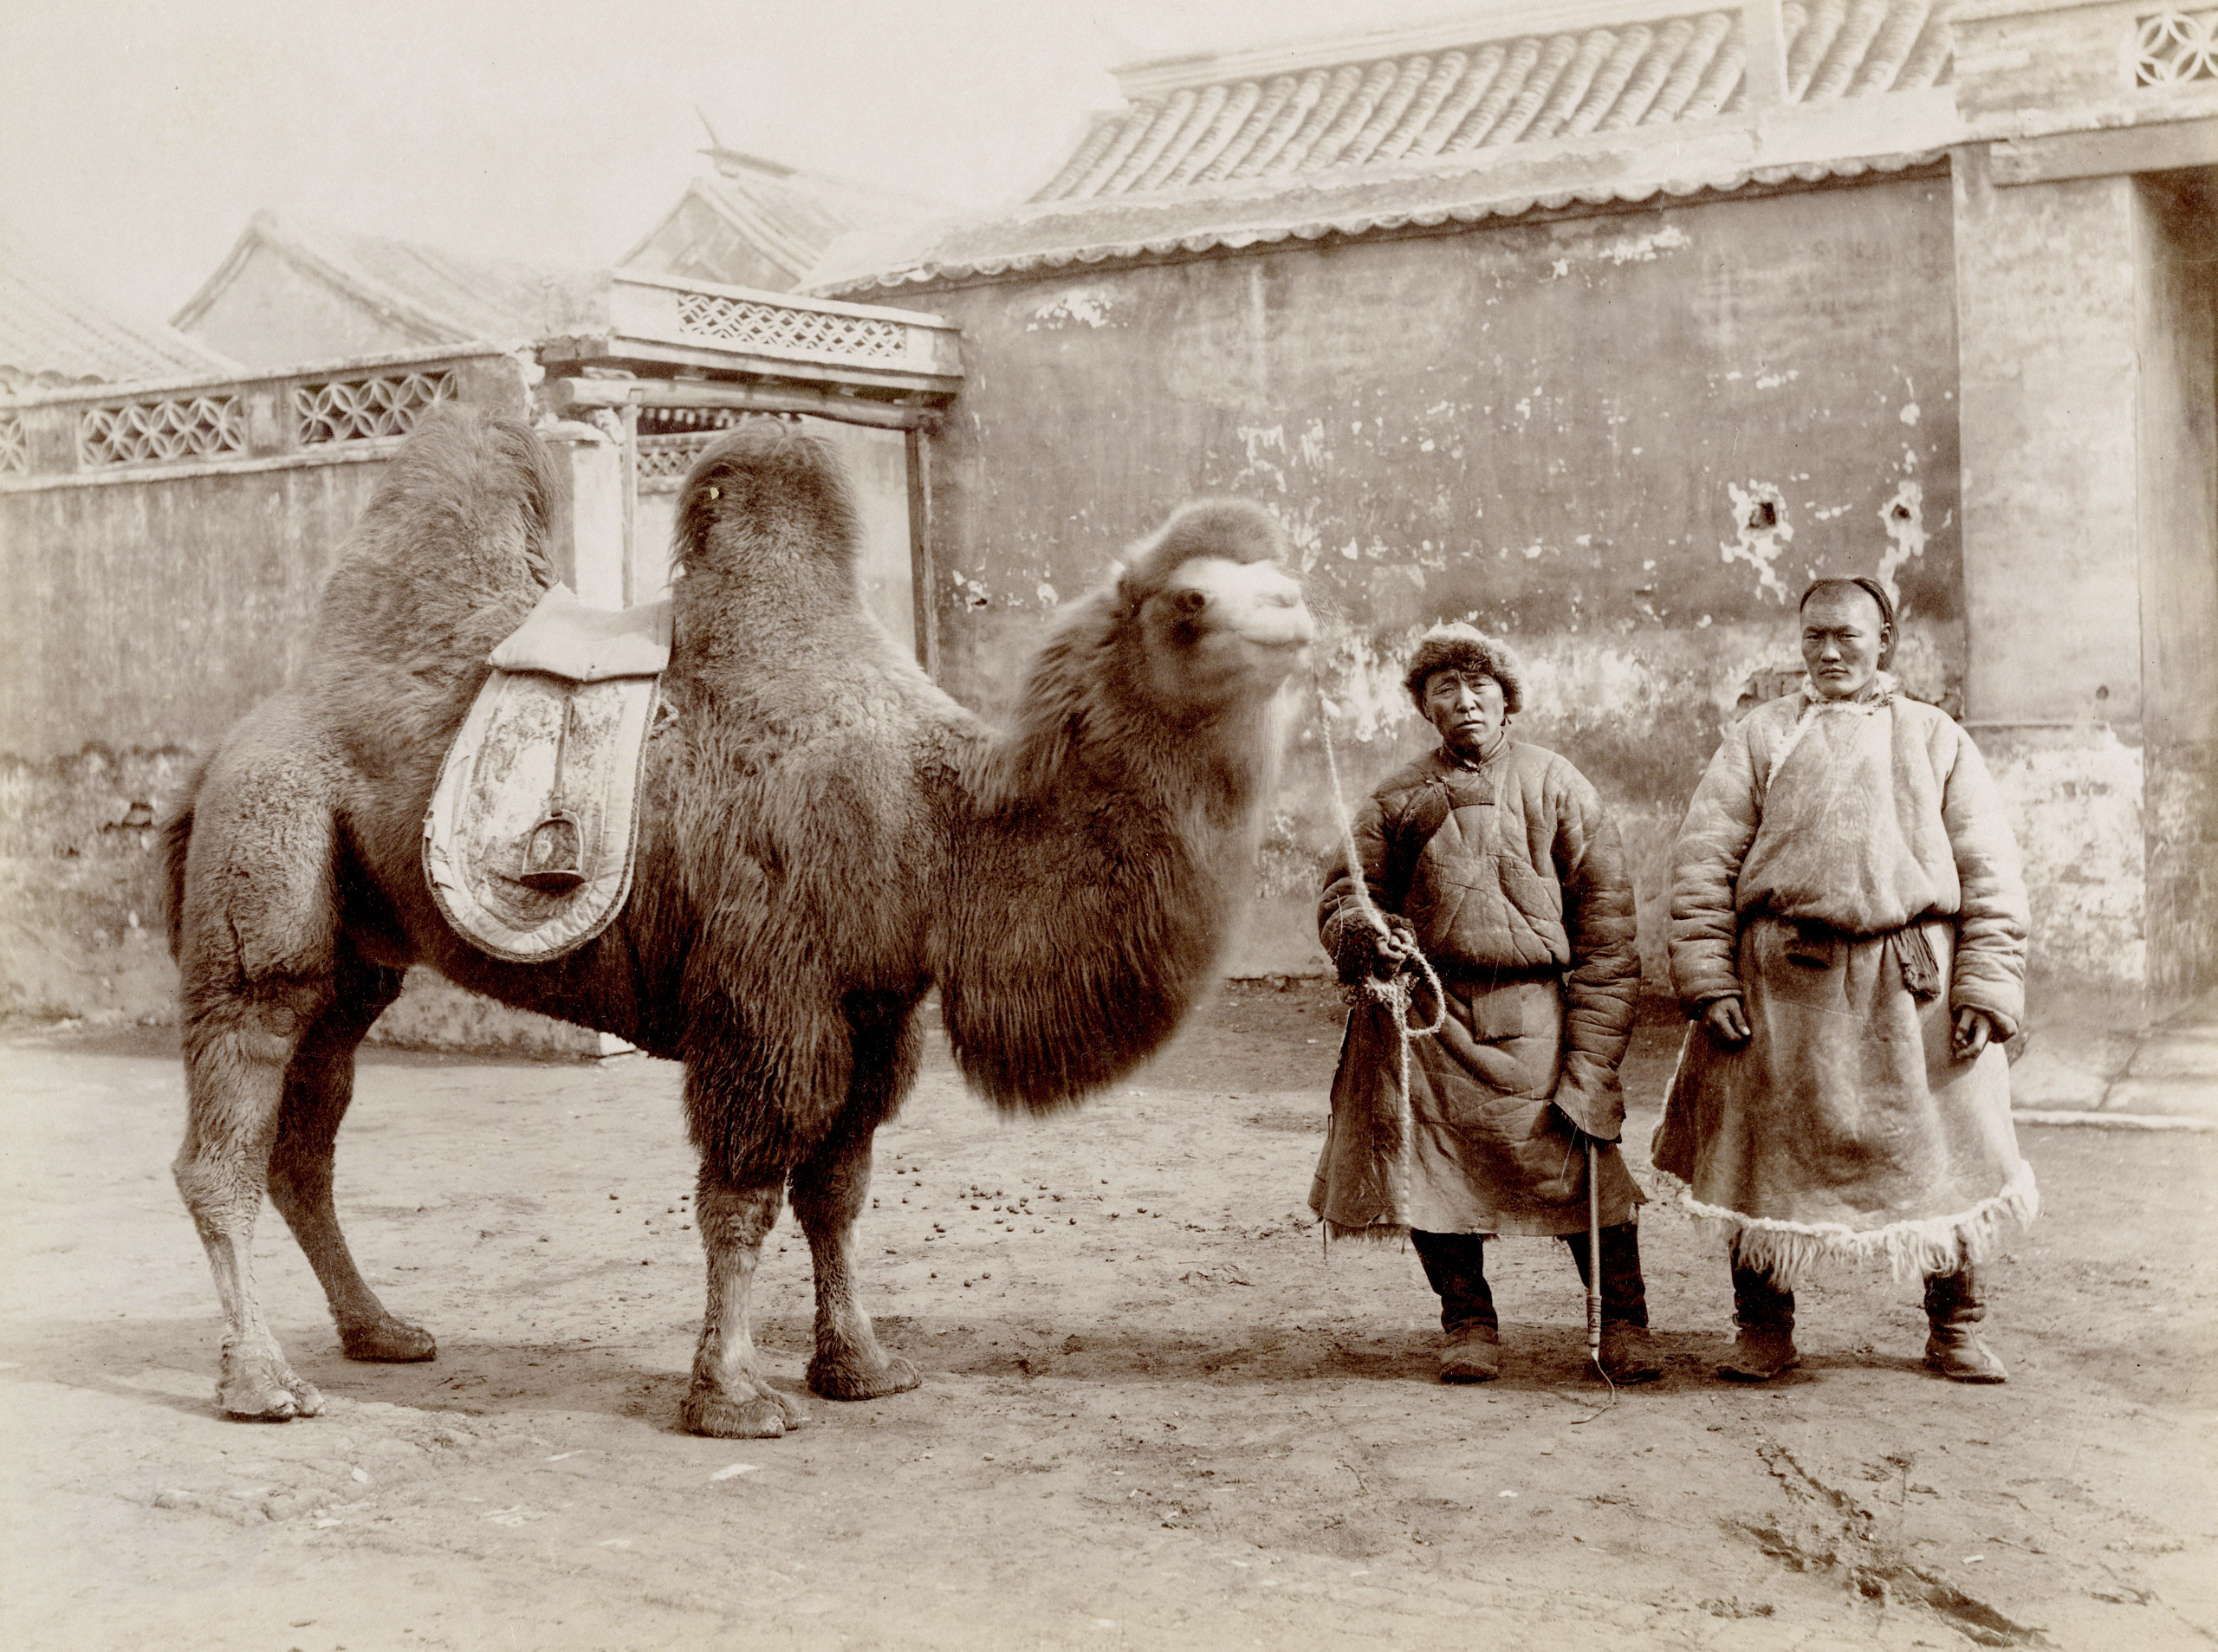 Caption from Stephan Lowentheil Collection. Early photograph of nineteenth-century travelers of the Silk Road. The ancient trade route connected East and West, usually passing through Mongolia, bringing goods from as far away as the Mediterranean. The Silk Road derived its name from the lucrative silk trade from China to the West established during the Han Dynasty (207 B.C.-220 A.D.). Bactrian camels, distinguished by their double humps, are tolerant of cold temperatures, high altitudes, and drought, making them ideal for the arduous caravan journey.